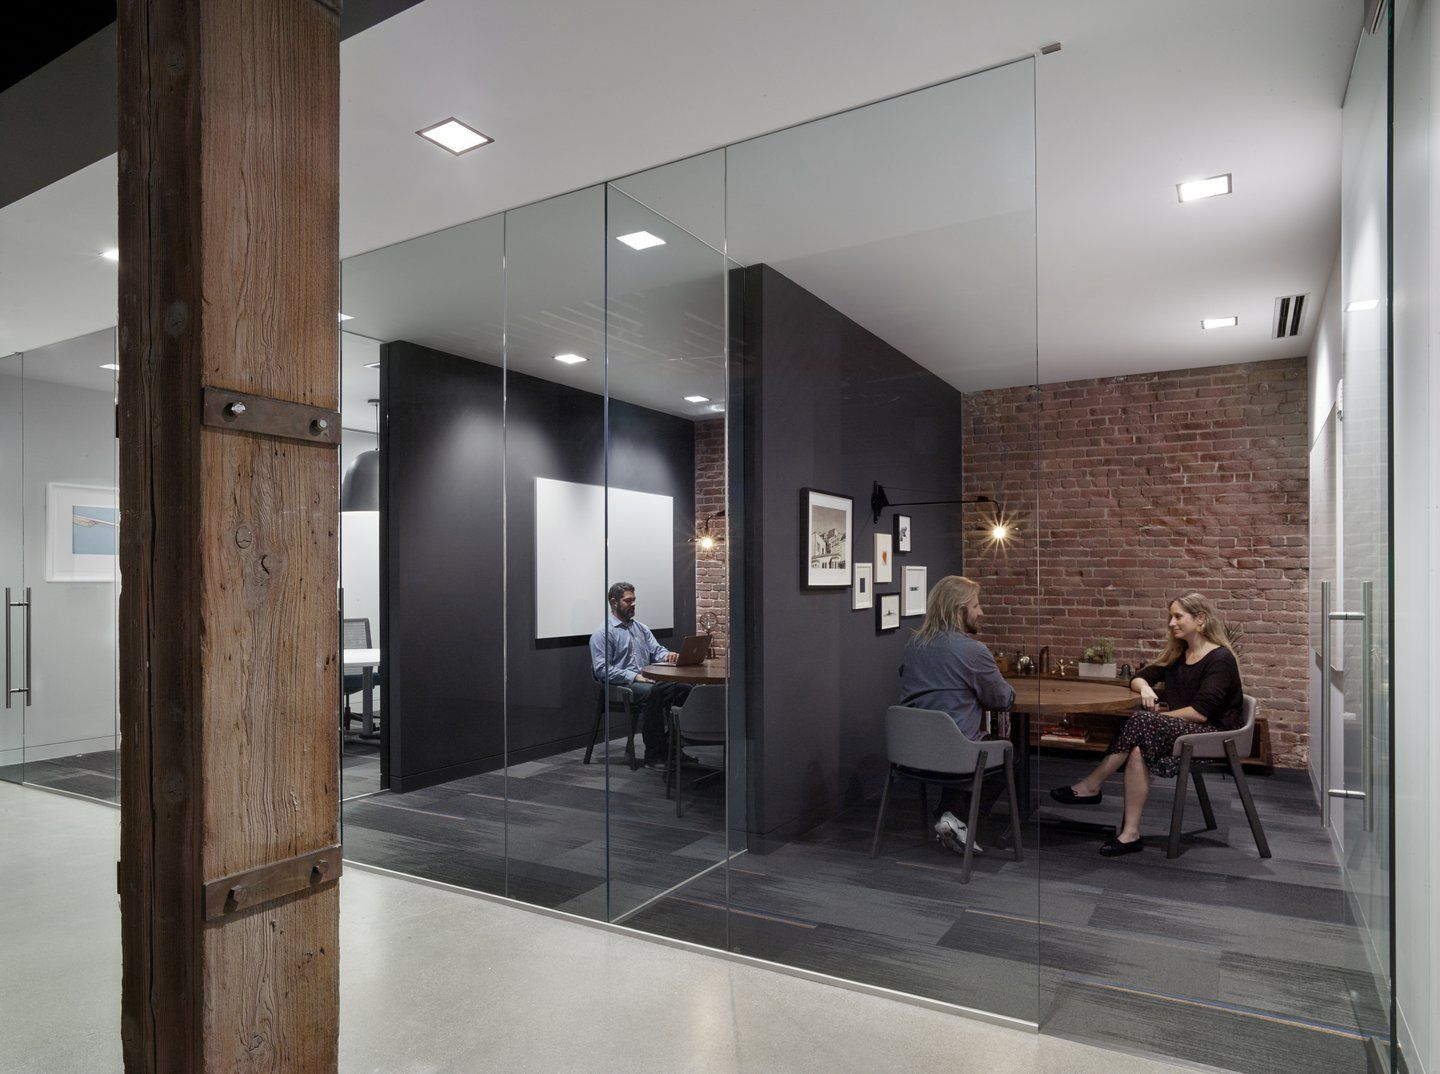 Construction Office Decorating Ideas Love Clean Lines While Incorporating Elements Of Existing